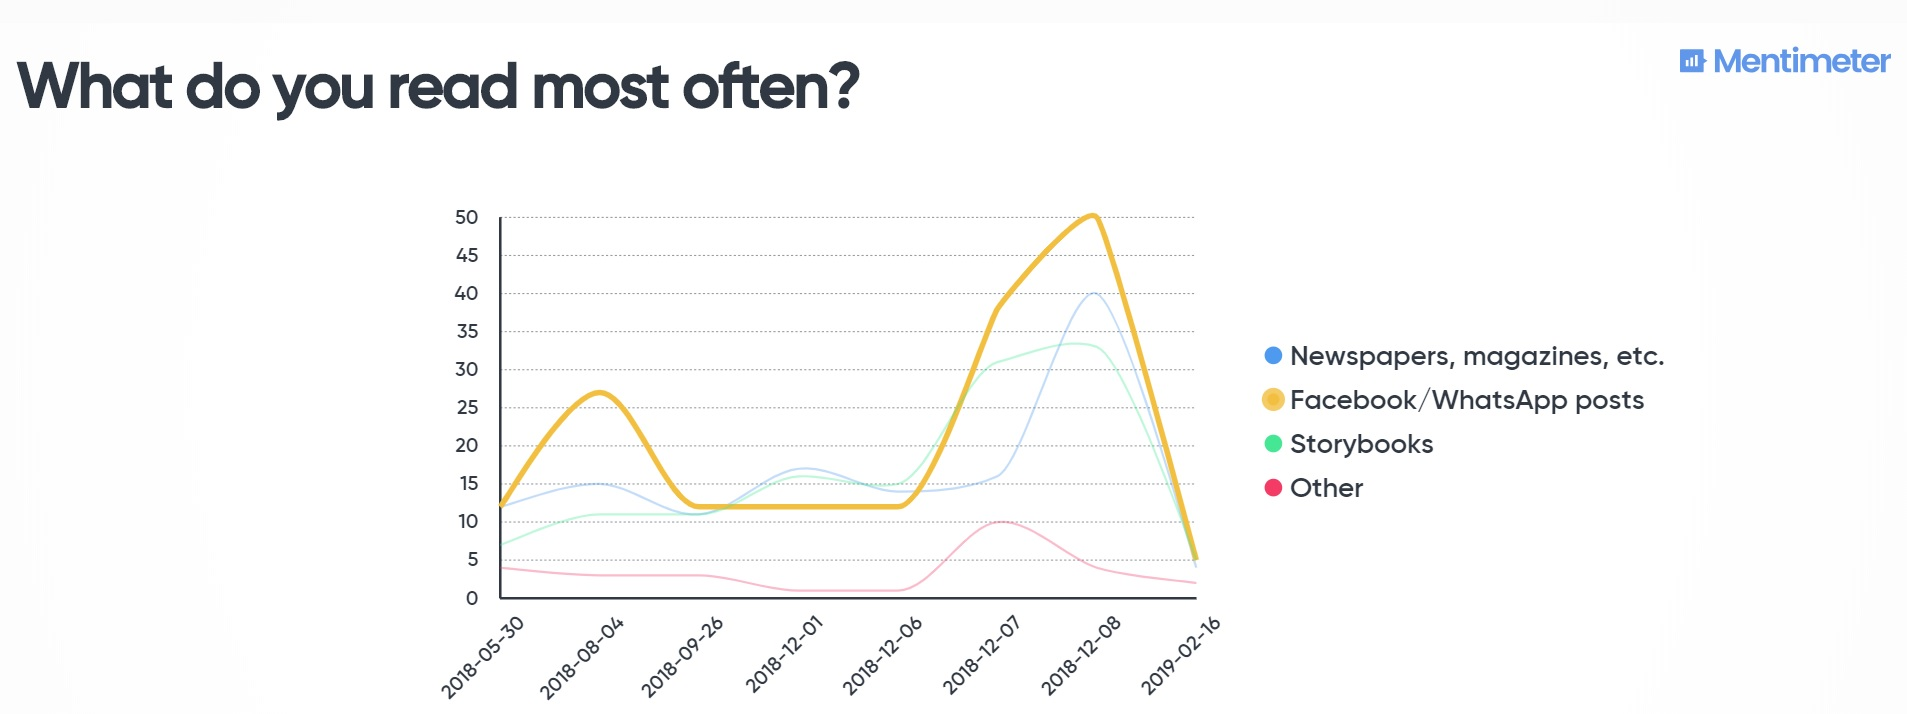 Combined data - what do you read most often? Facebook/WhatsApp wins by a narrow margin